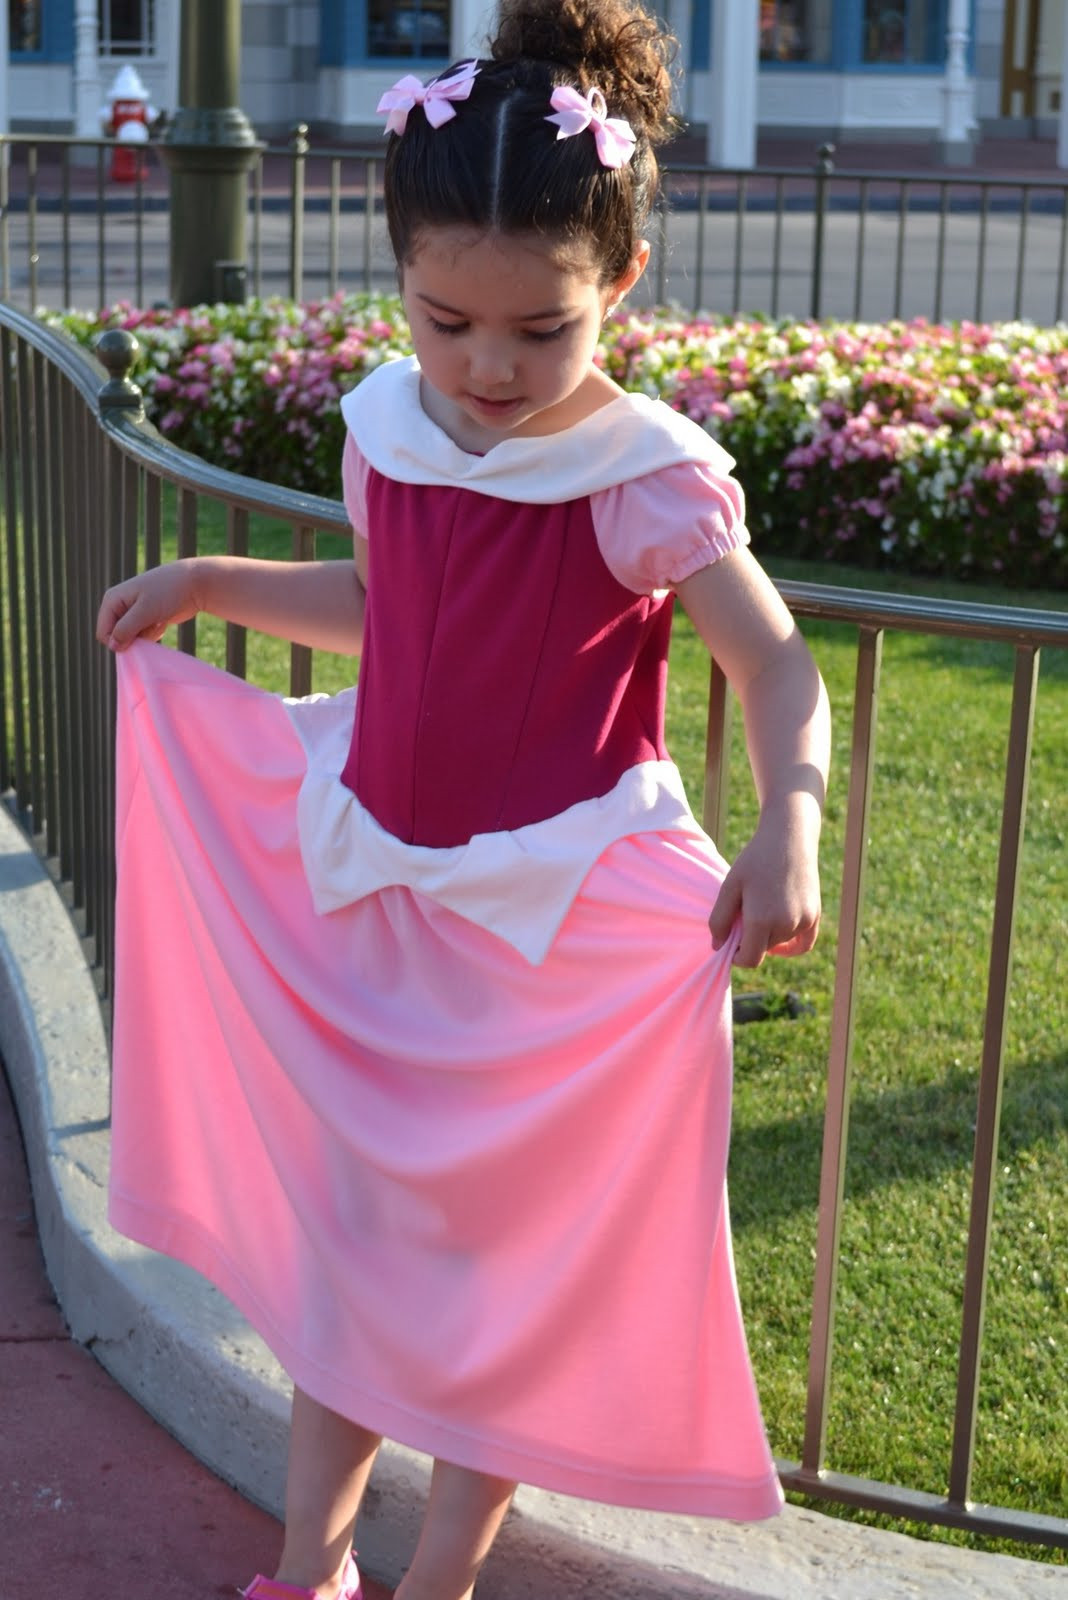 Best ideas about DIY Princess Costume . Save or Pin All Hail Princess Aurora crafterhours Now.